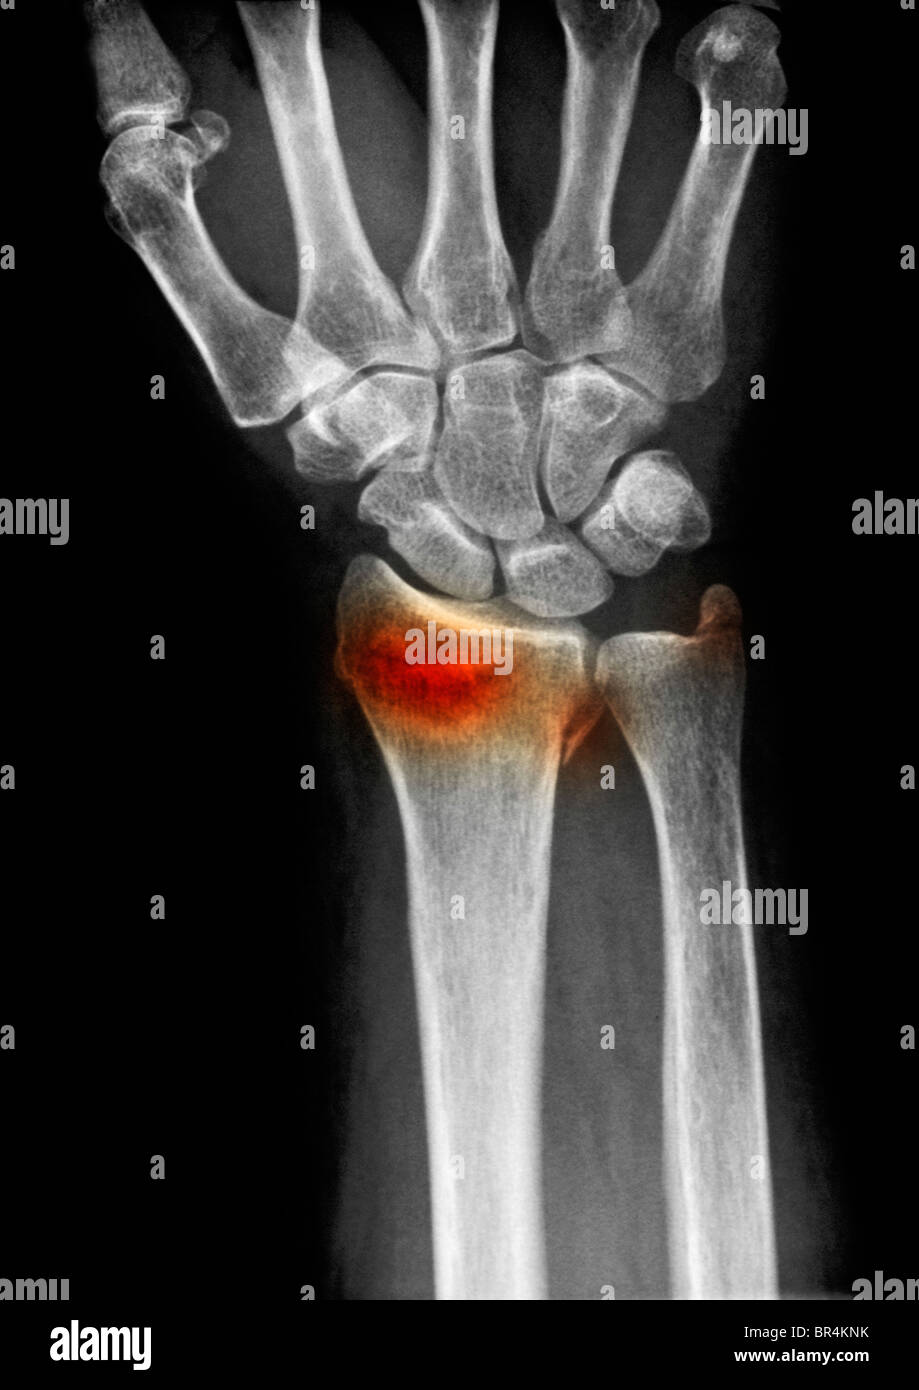 wrist xray of a 63 year old woman who fell and fractured